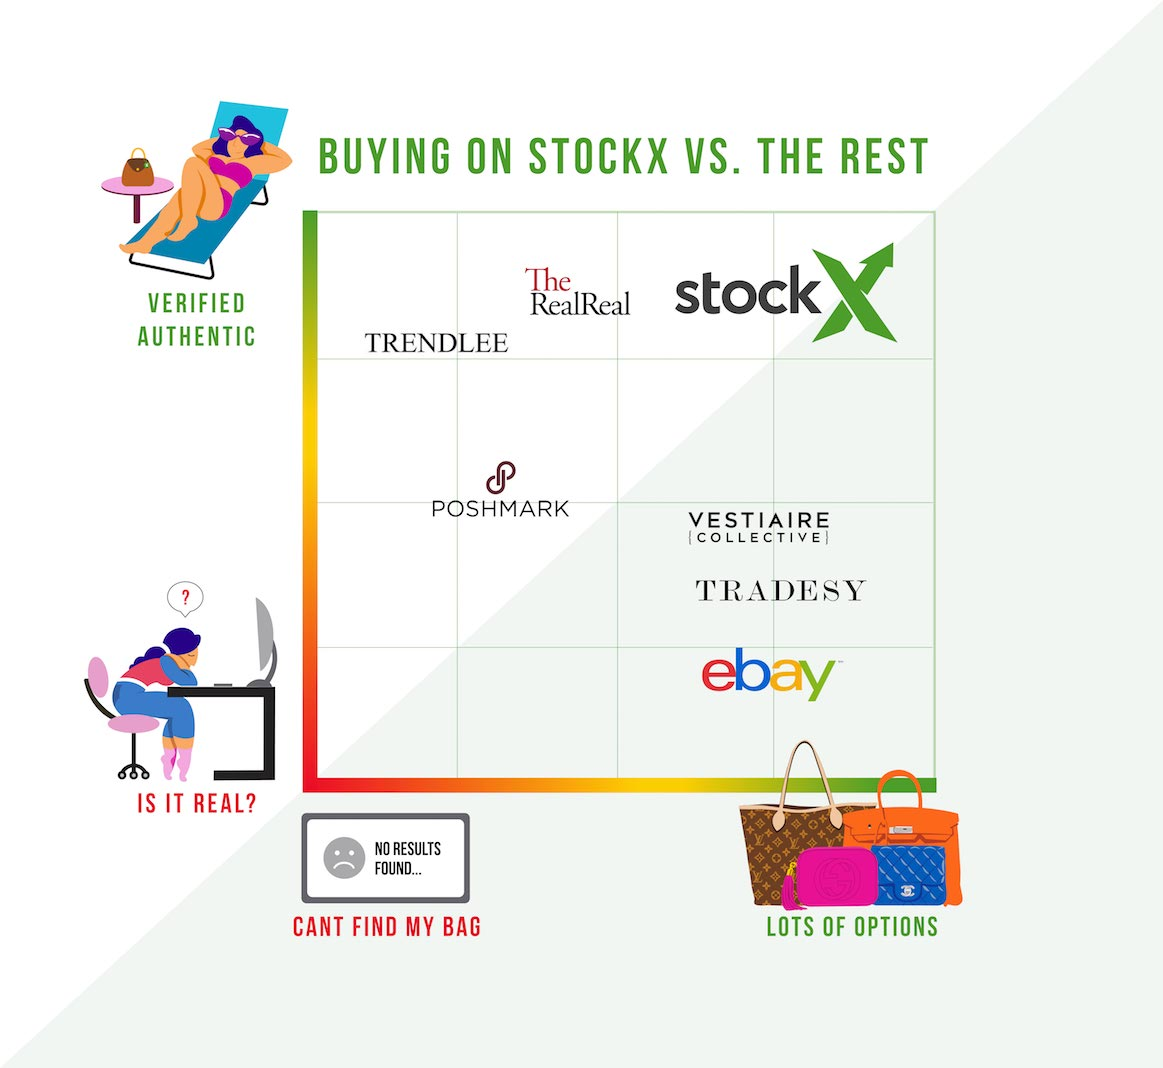 Resale Revolution: How StockX Is the Best New Way to Buy Bags Online